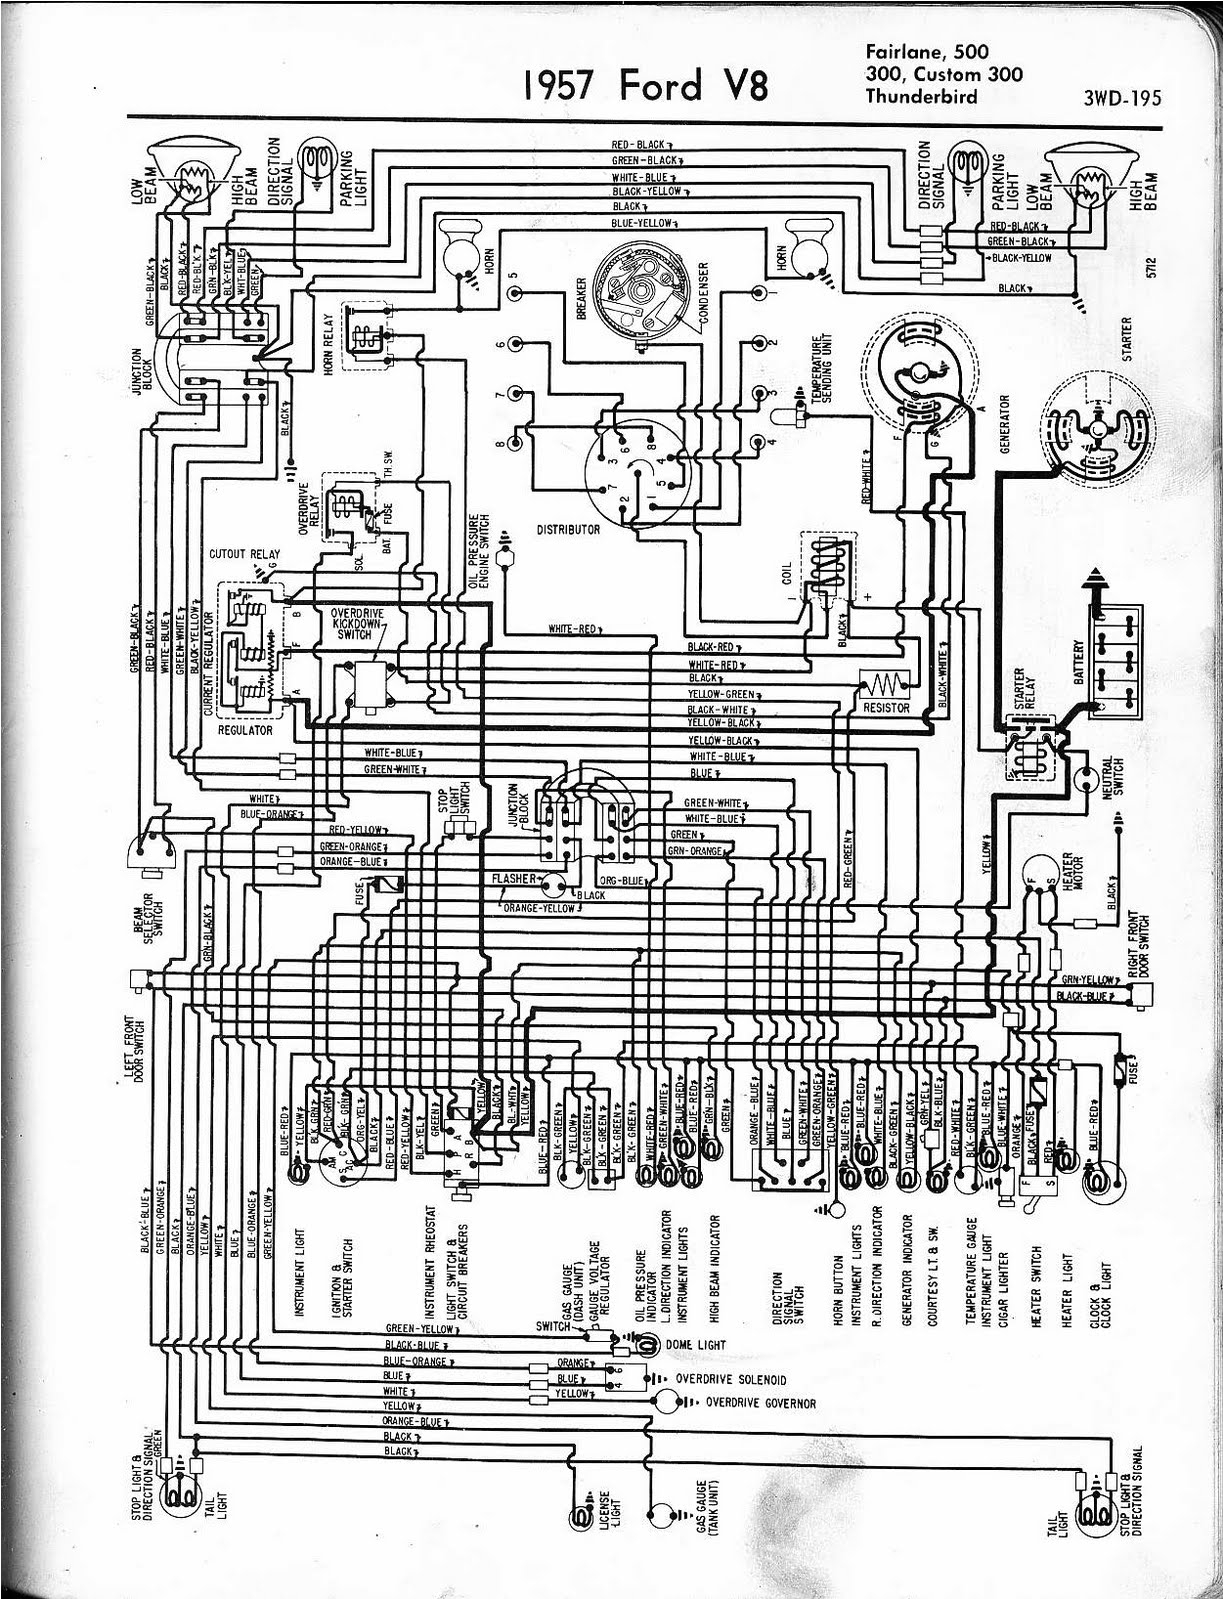 1957 ford wiring harness wiring diagram post 1957 ford wiring harness 1957 ford ranch wagon wiring